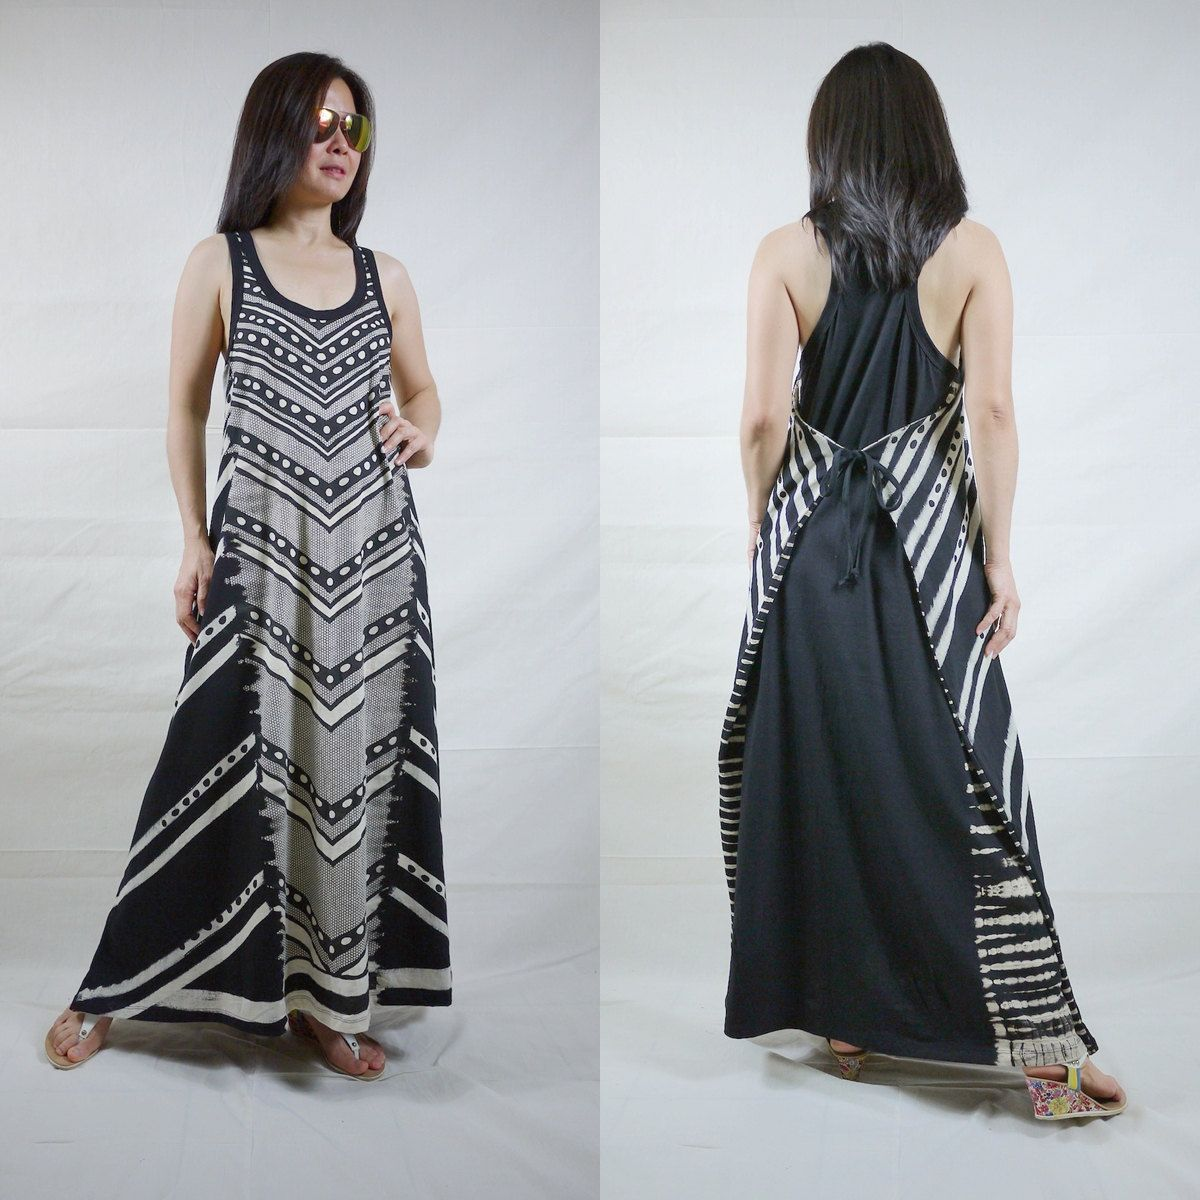 Sleeveless Scoop Neck Wrap Printed Stretch Cotton Maxi